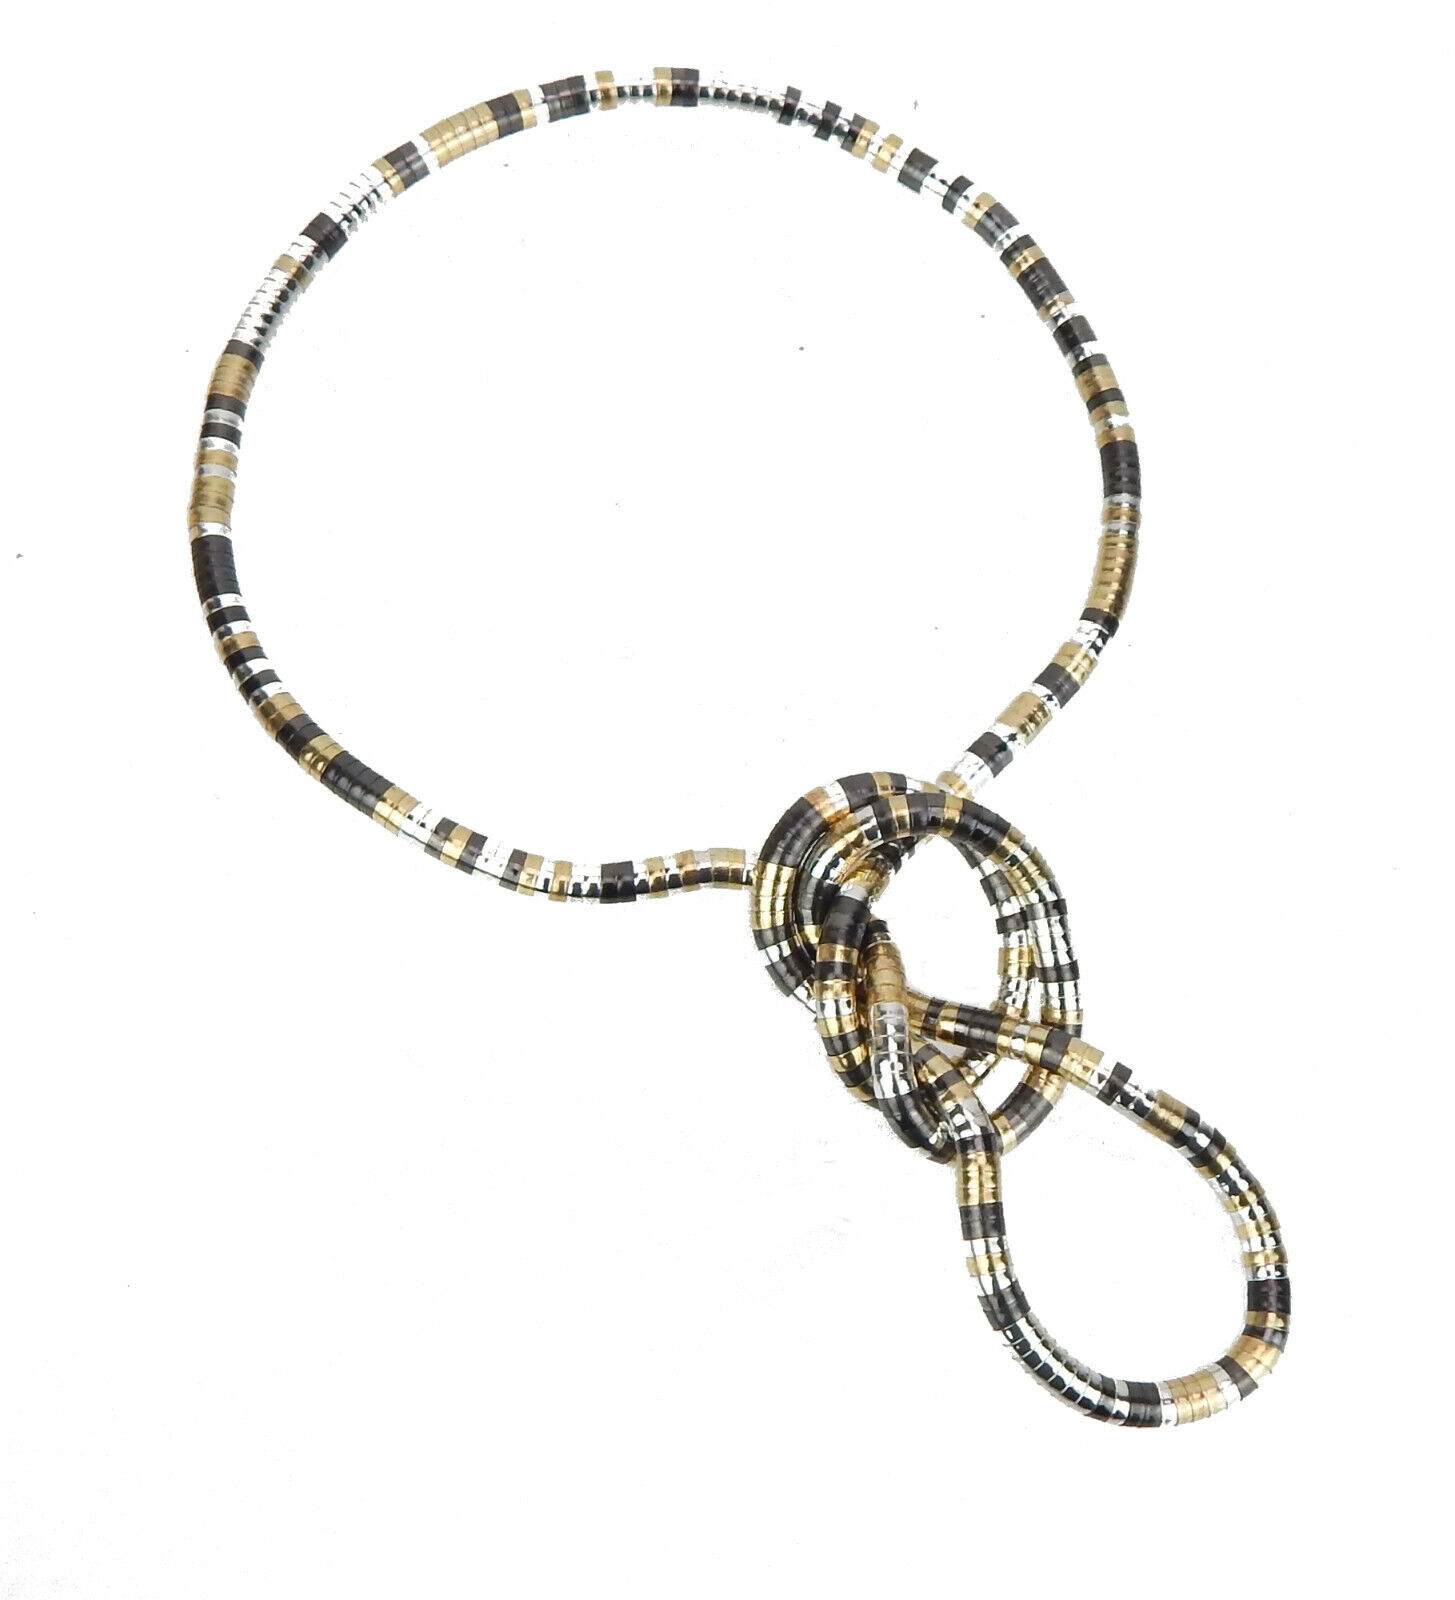 necklace silver necklace Choker by Ella Jonte newcomer necklace Statement chain